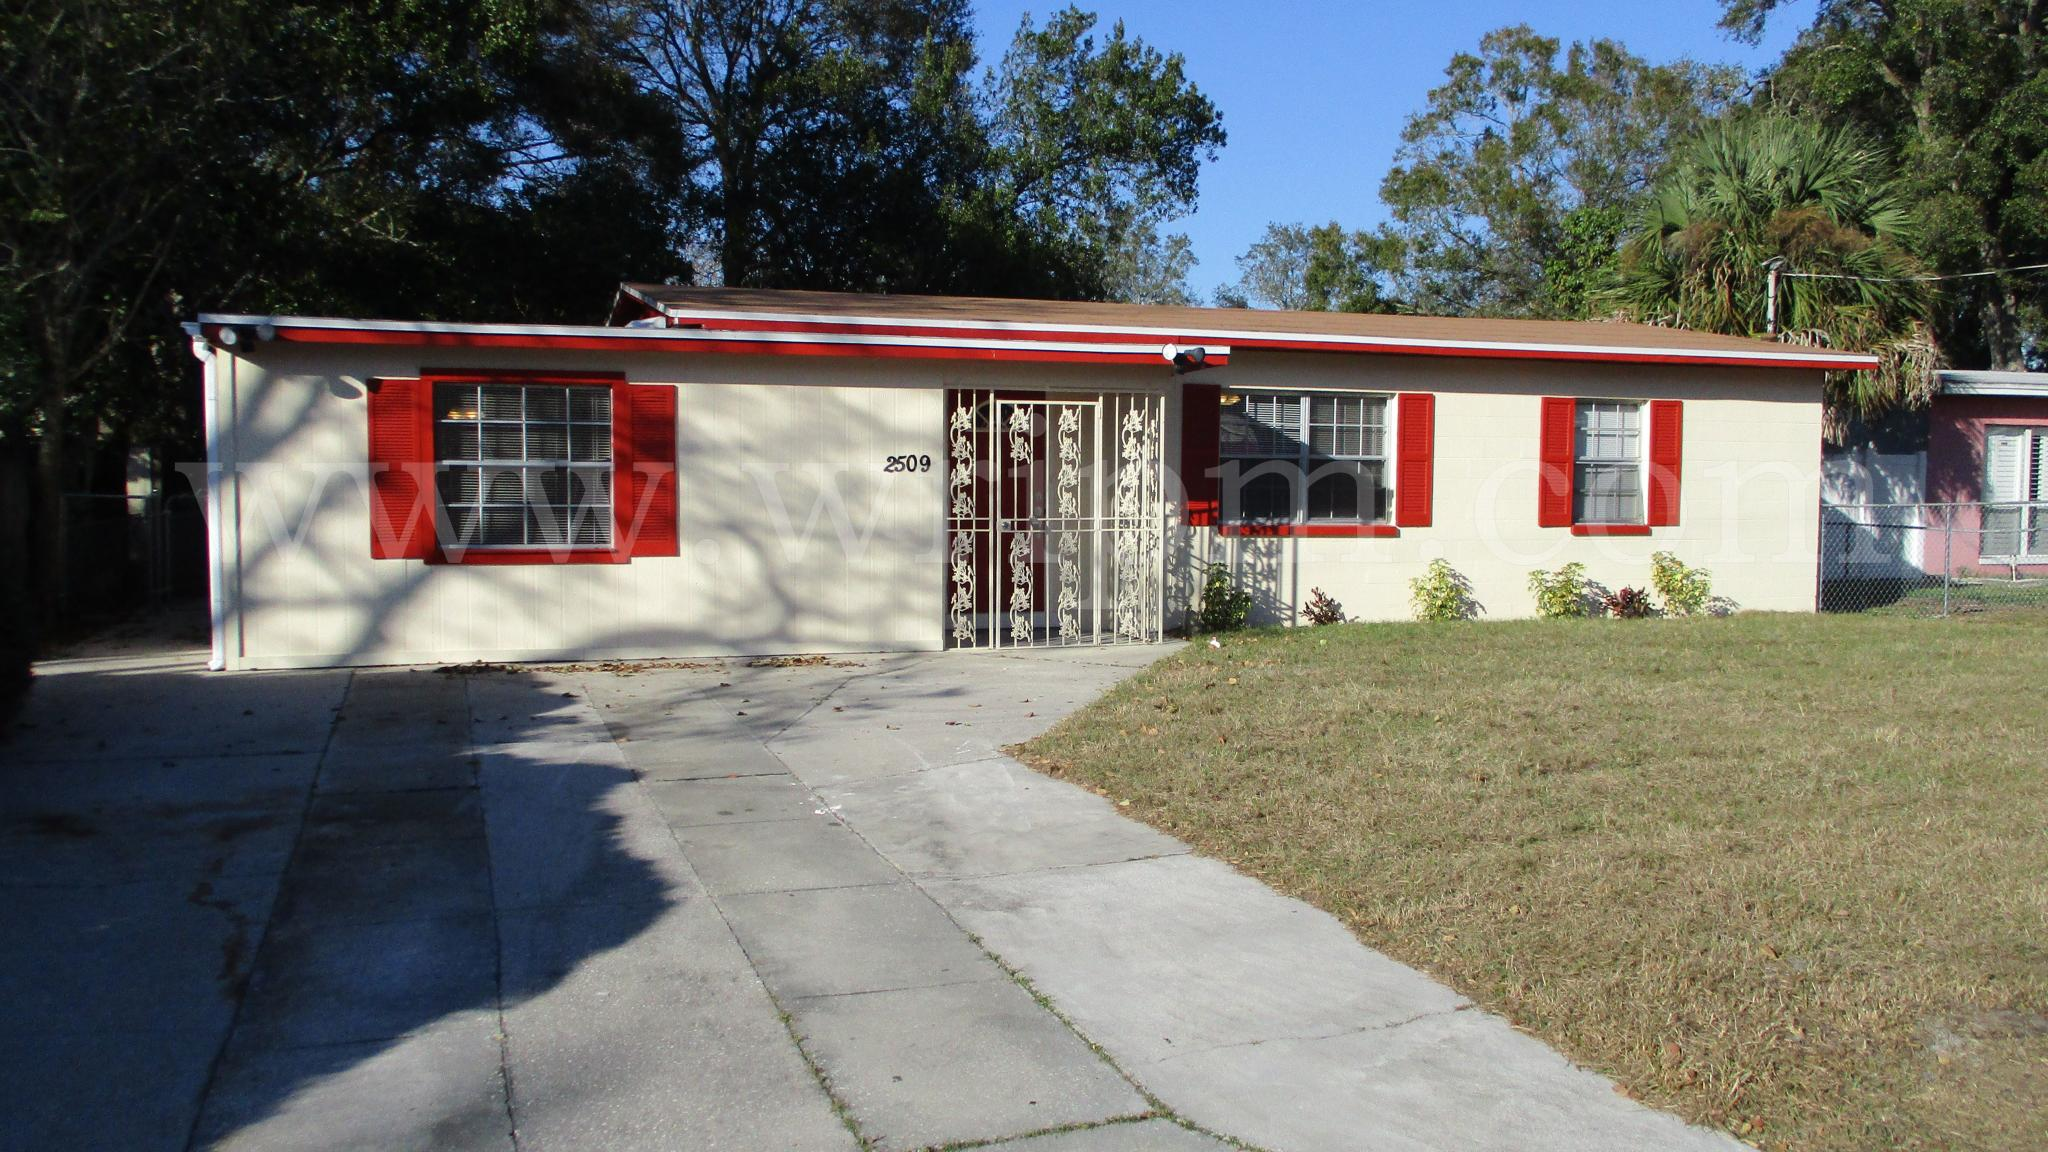 2509 w crawford st for rent tampa fl trulia